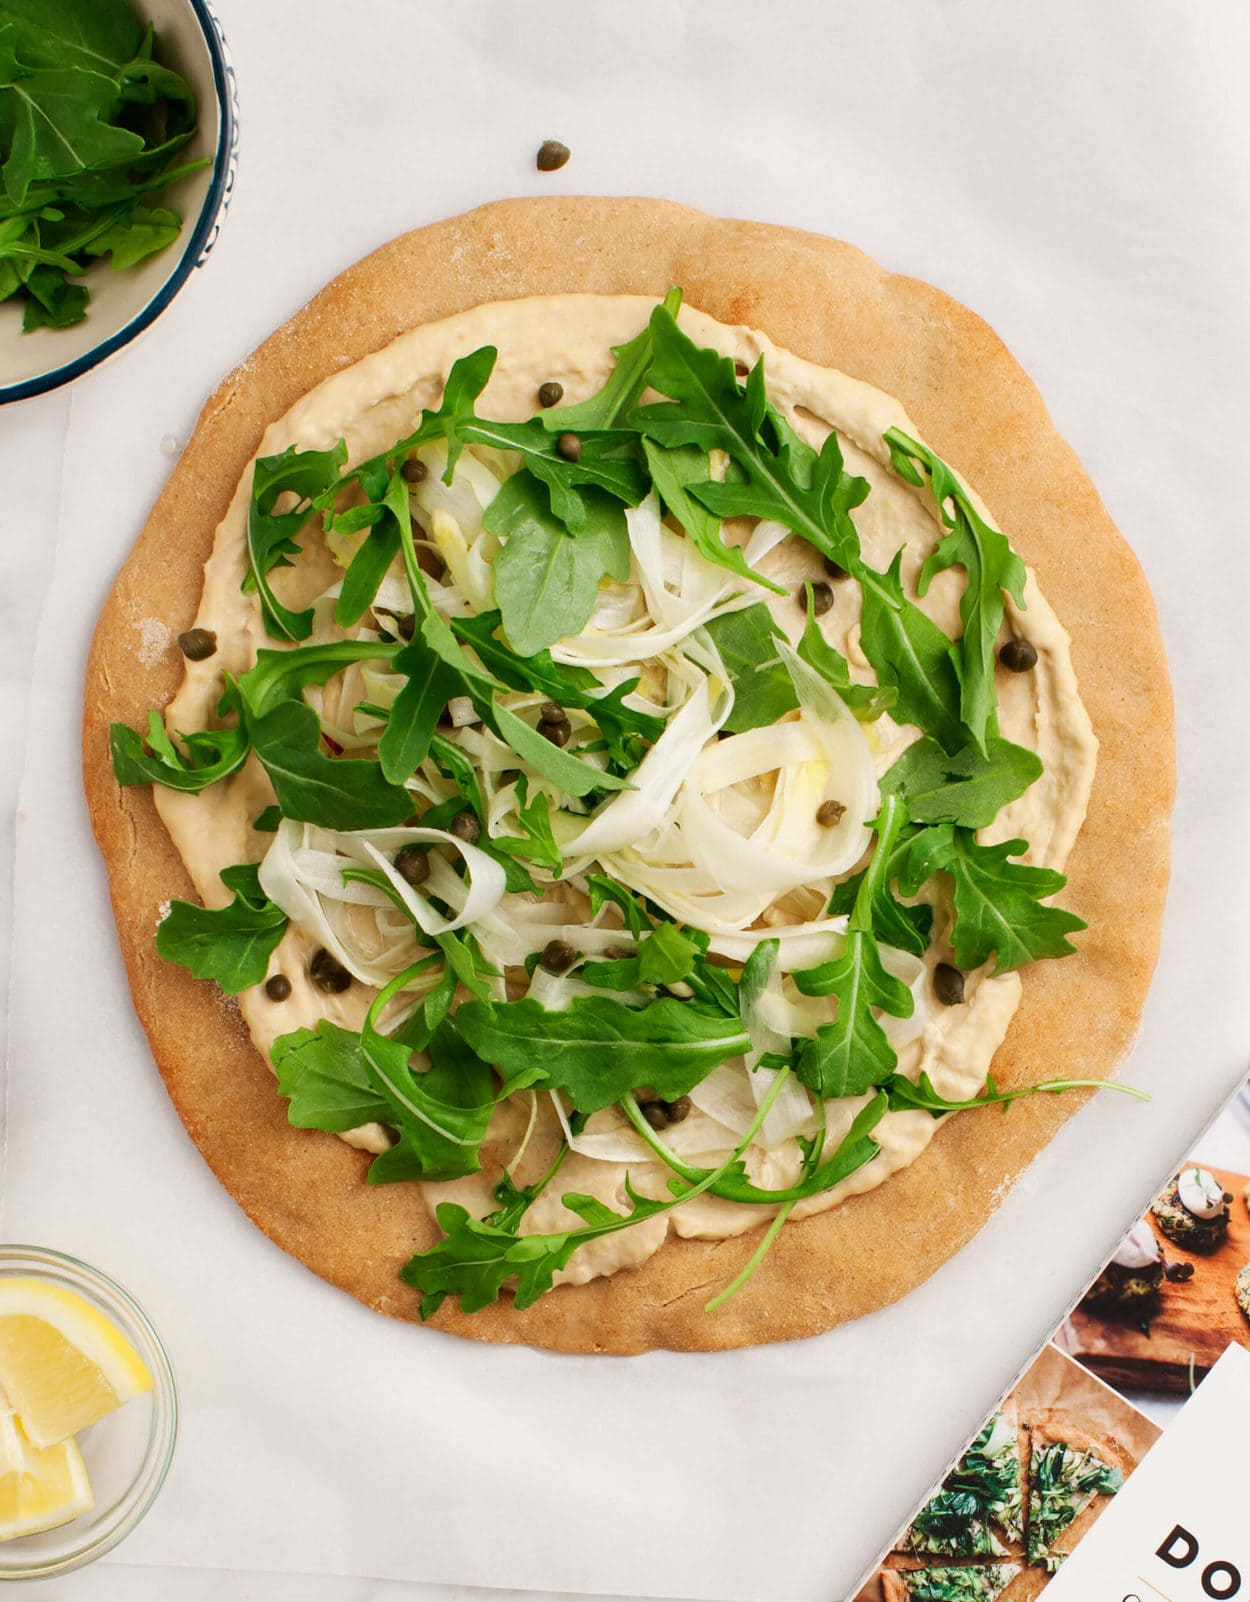 Chickpea crust pizza with arugula.